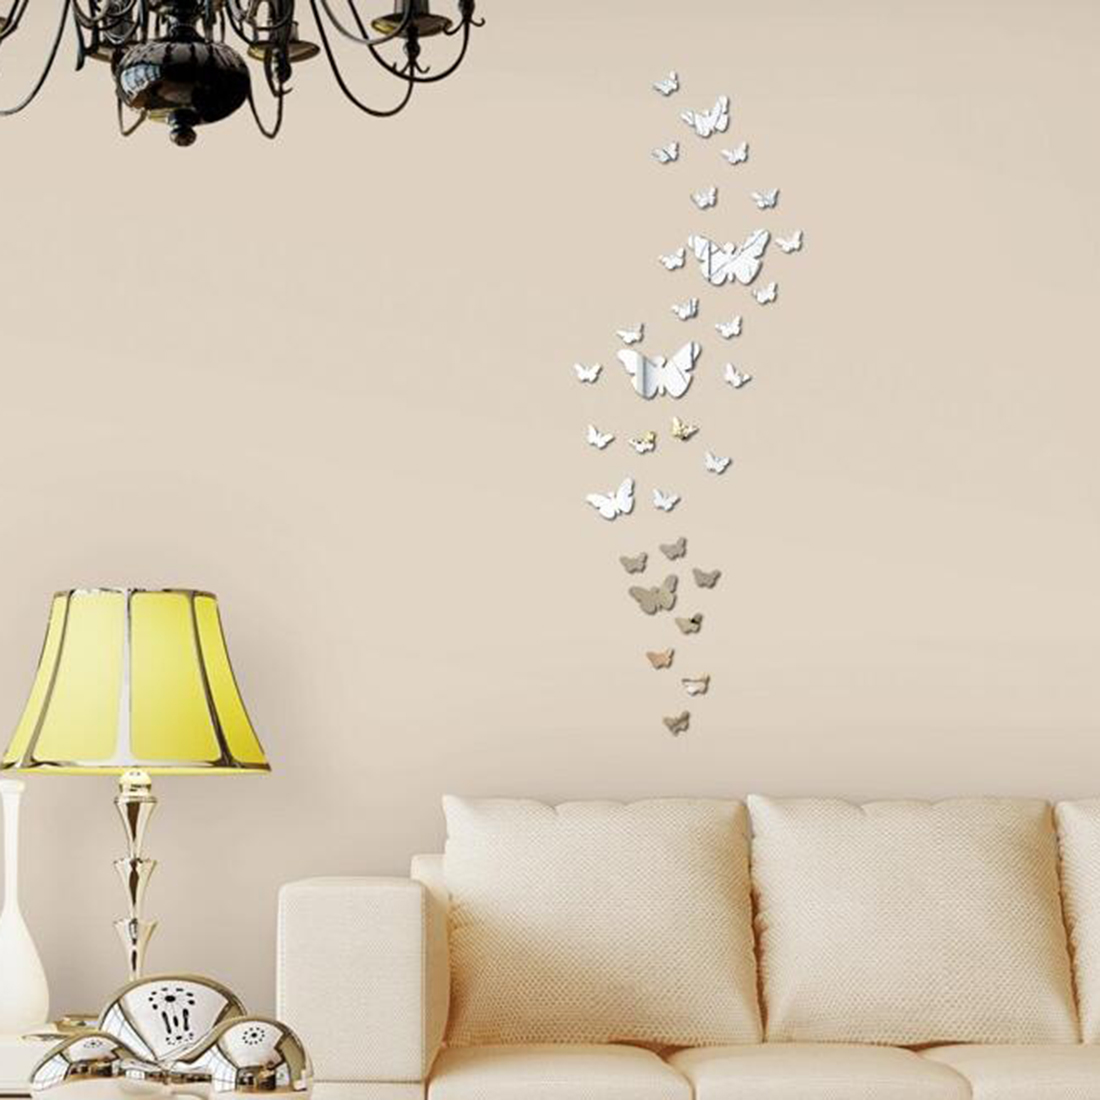 Compare Prices On Large Decorative Wall Mirrors Online Shopping - Large decorative wall mirror